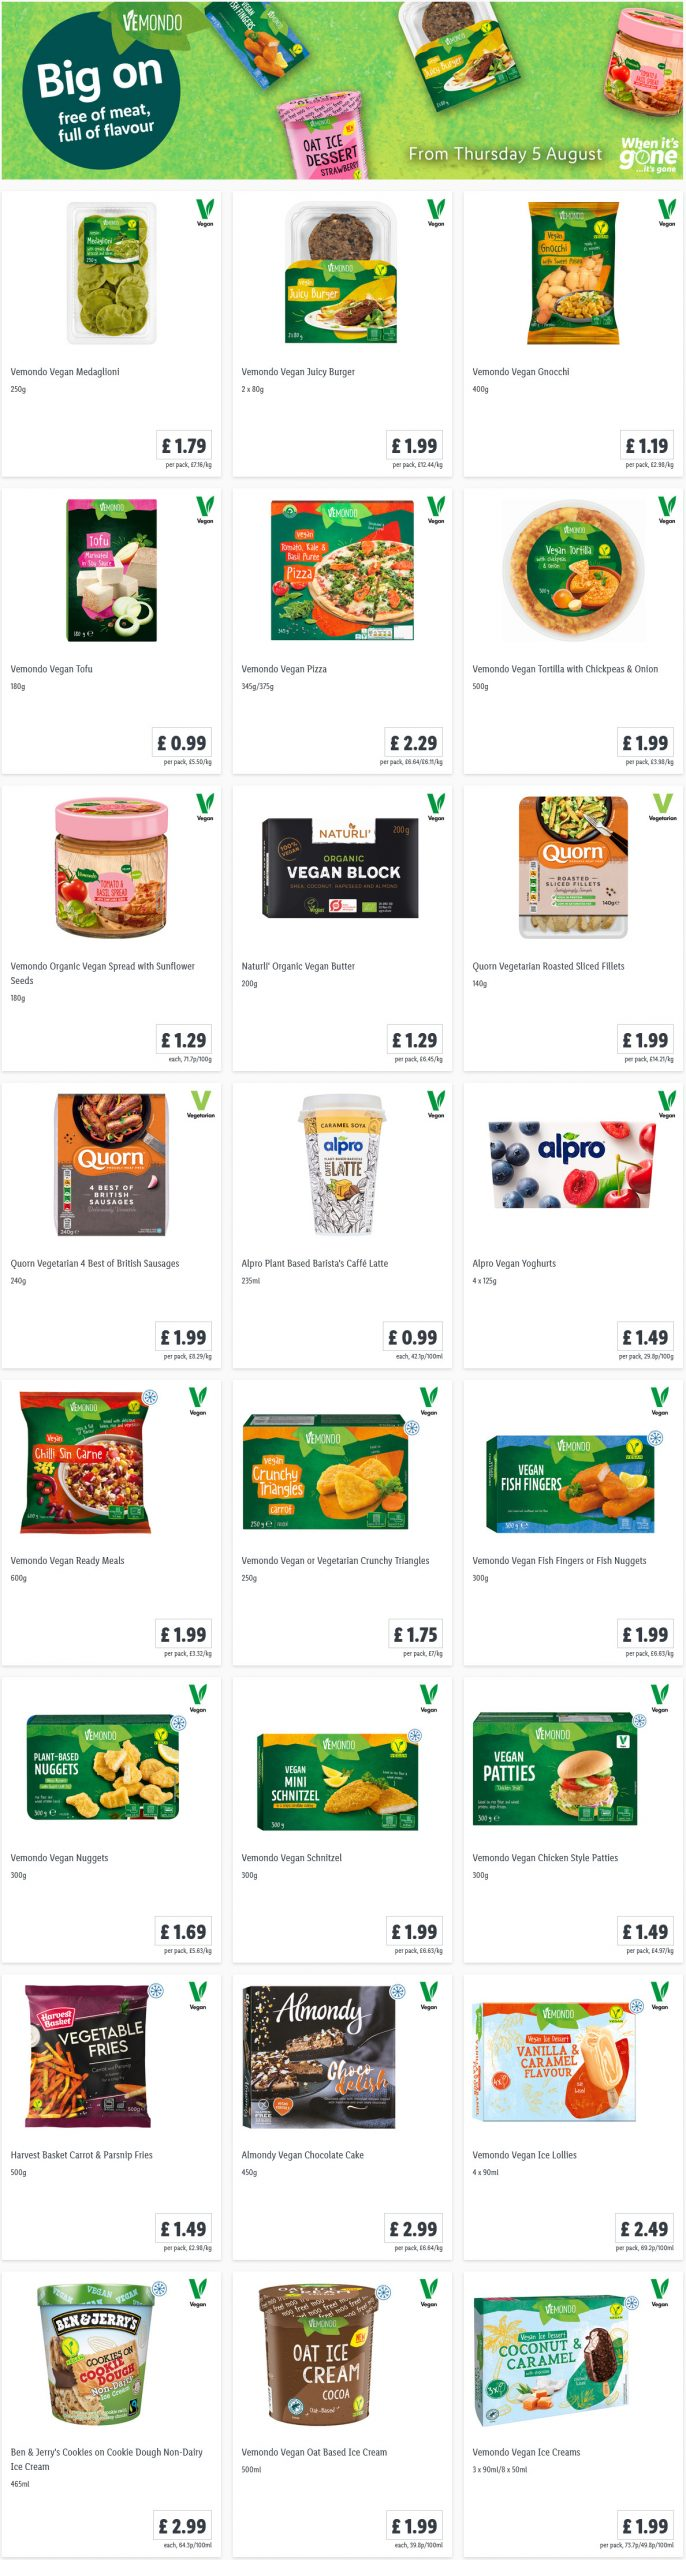 LIDL Offers this Thursday Veggie Week (Meat Free) From 5th August 2021